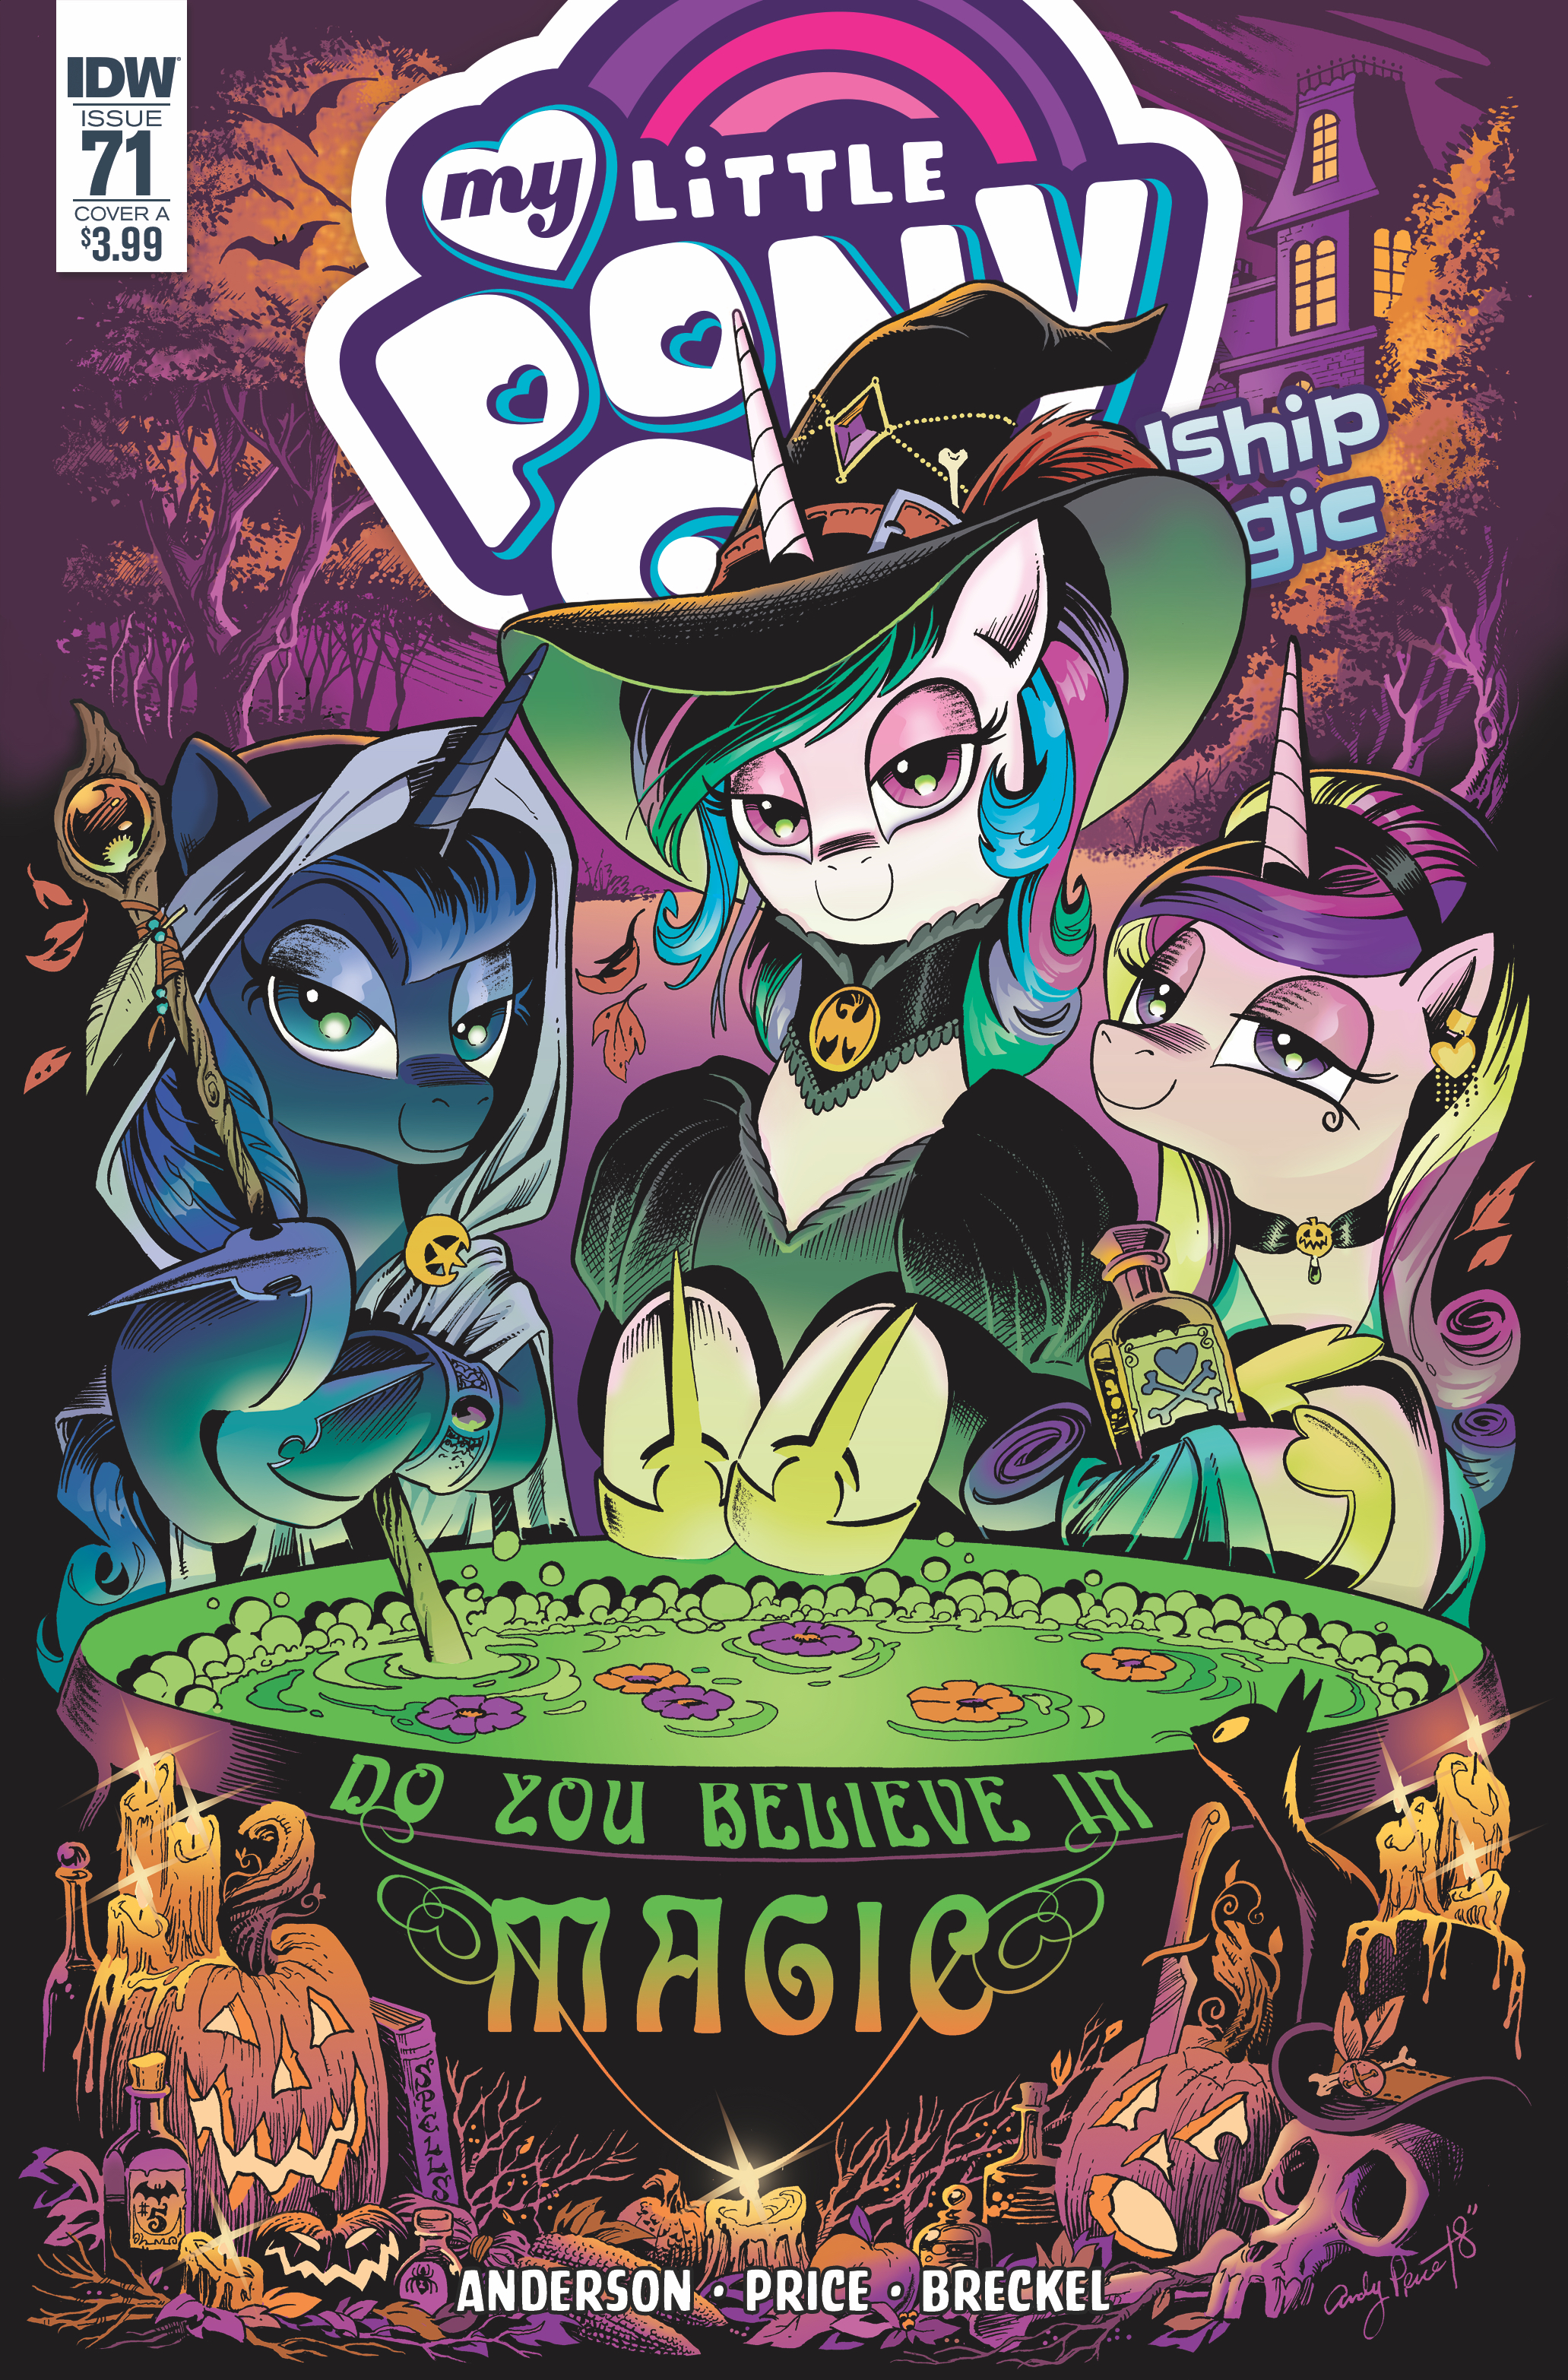 Friendship is Magic Issue 71